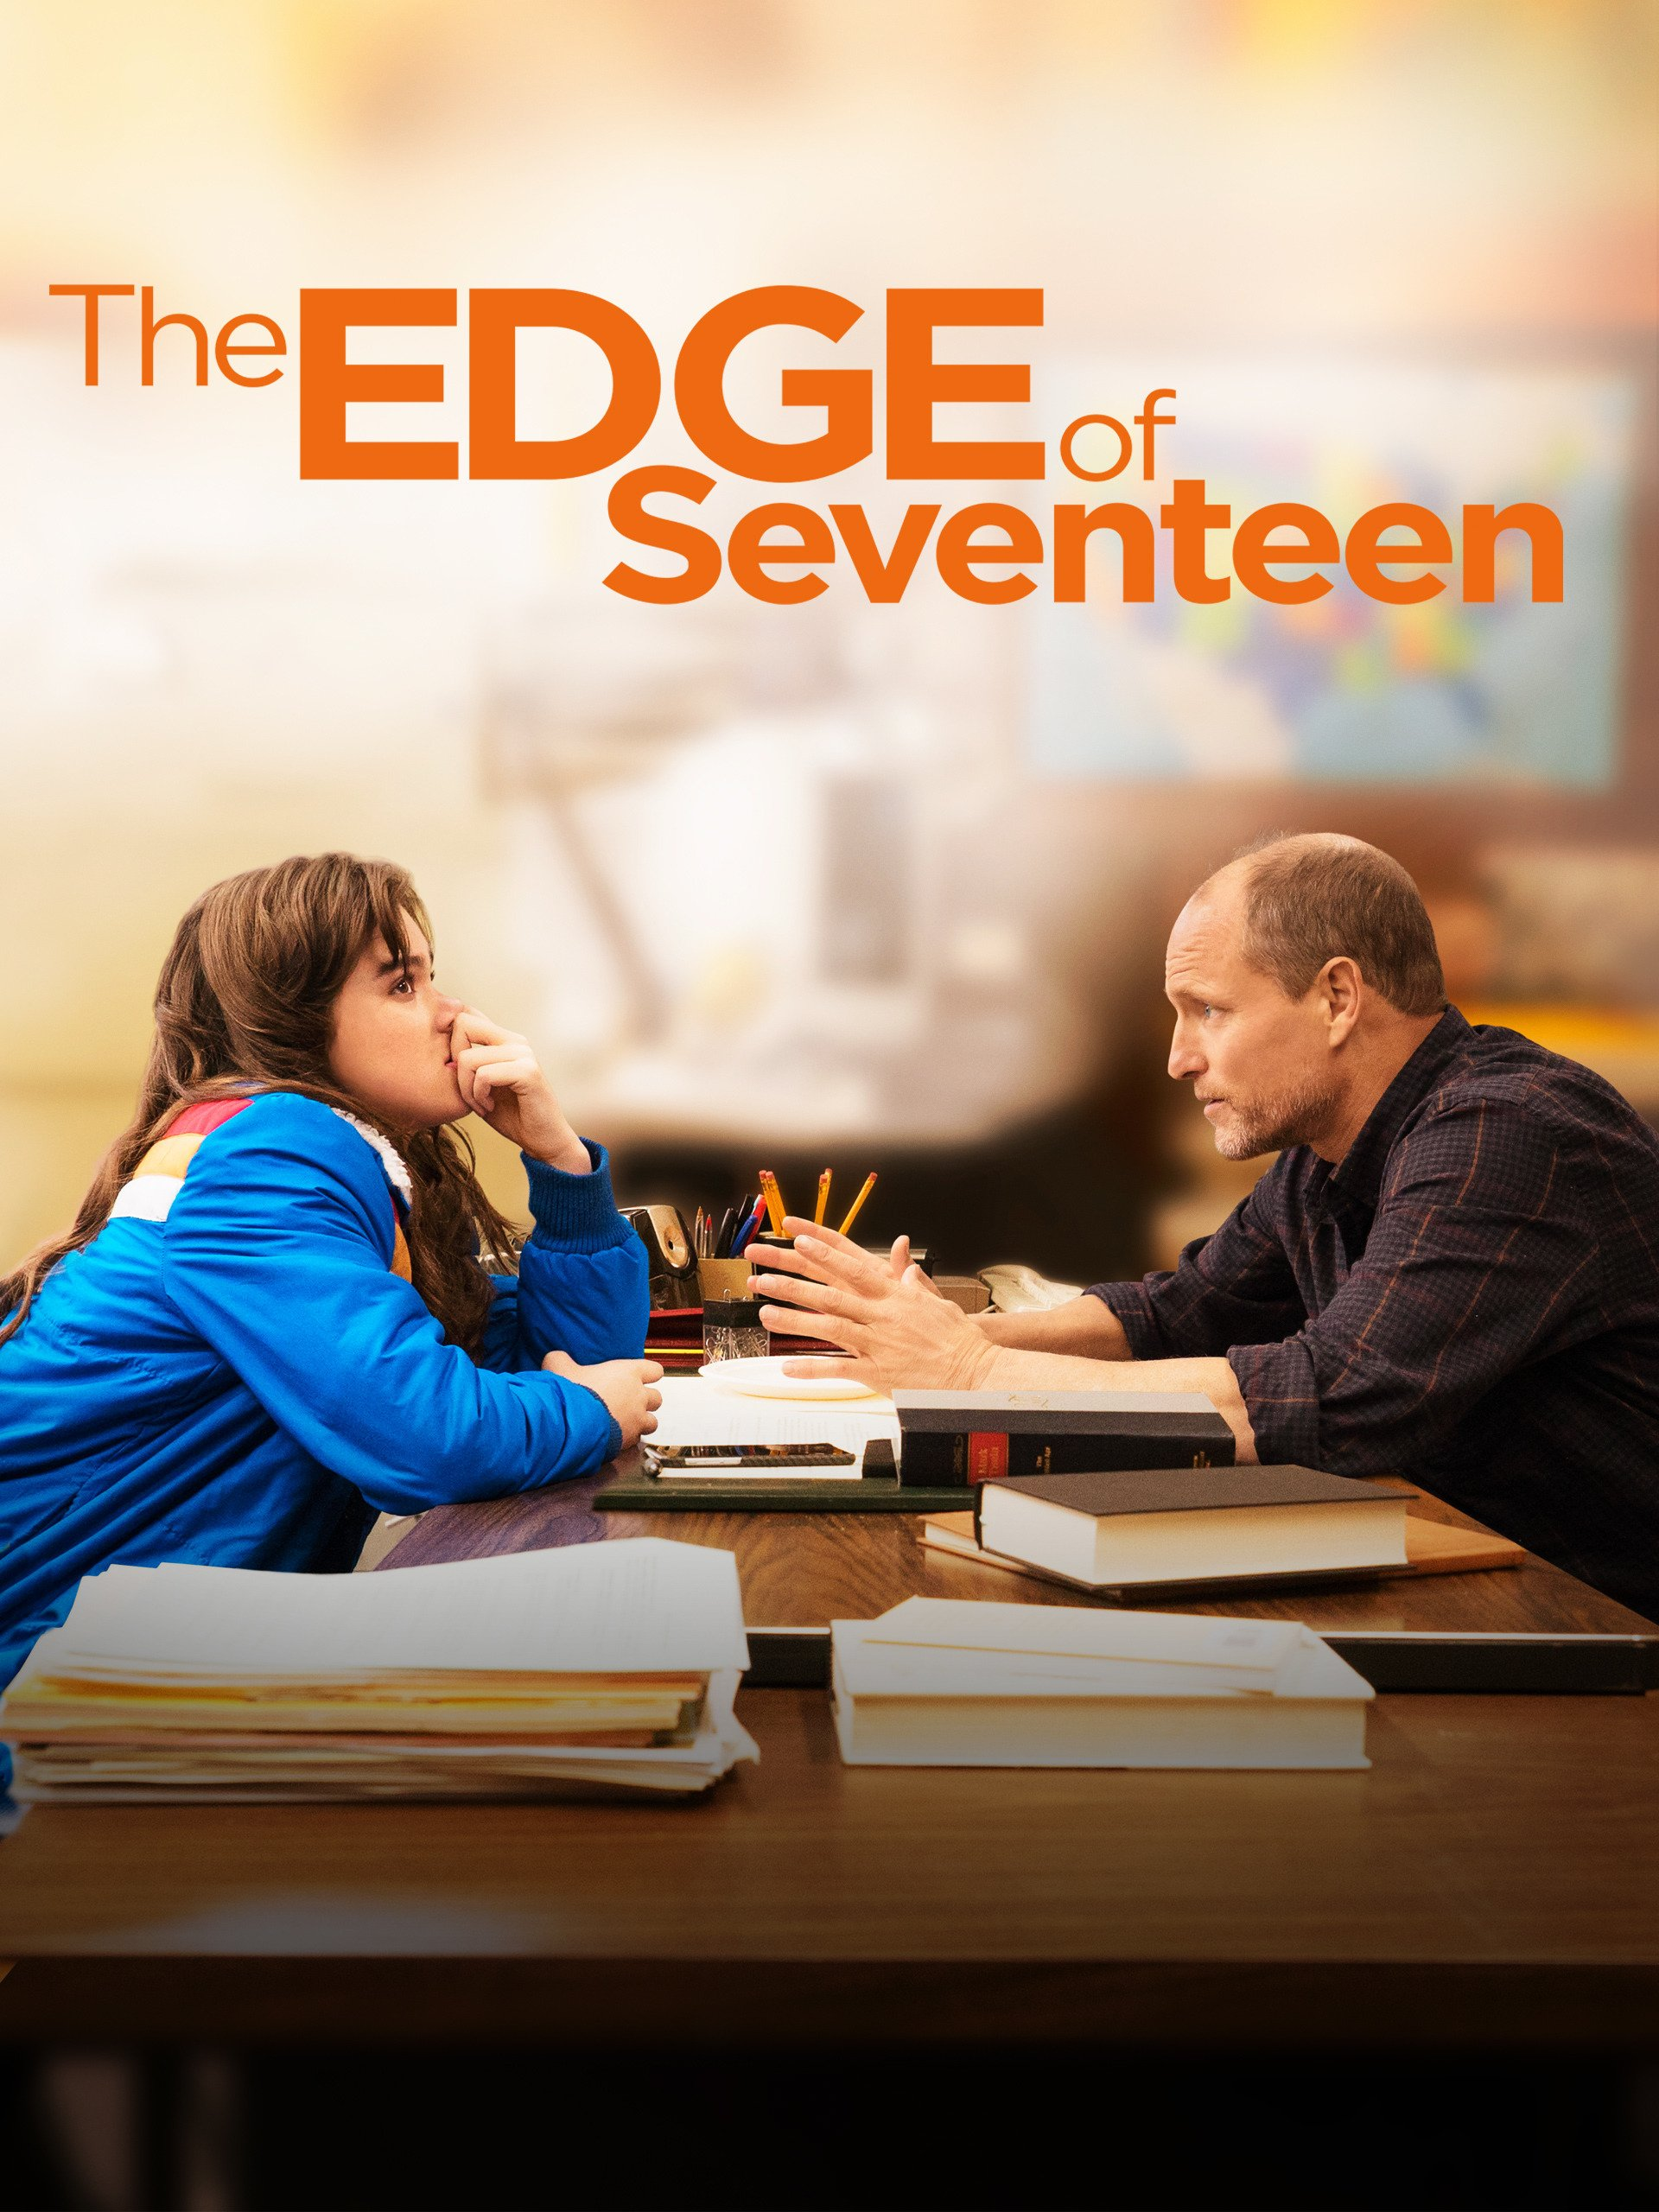 Amazon.com: Watch The Edge of Seventeen | Prime Video